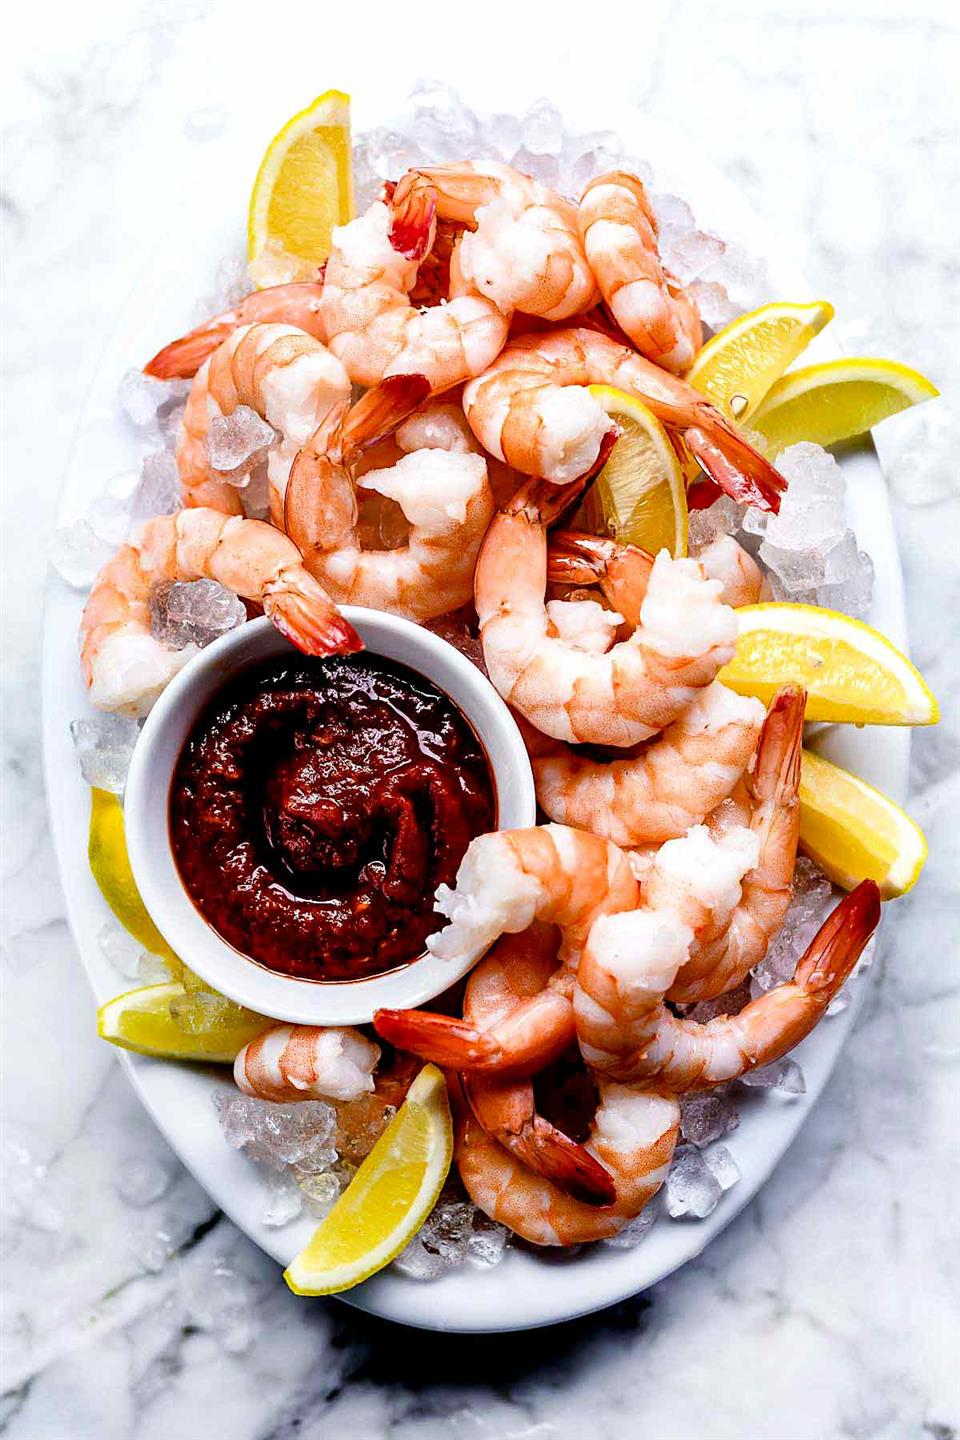 shrimp served on ice with cocktail sauce